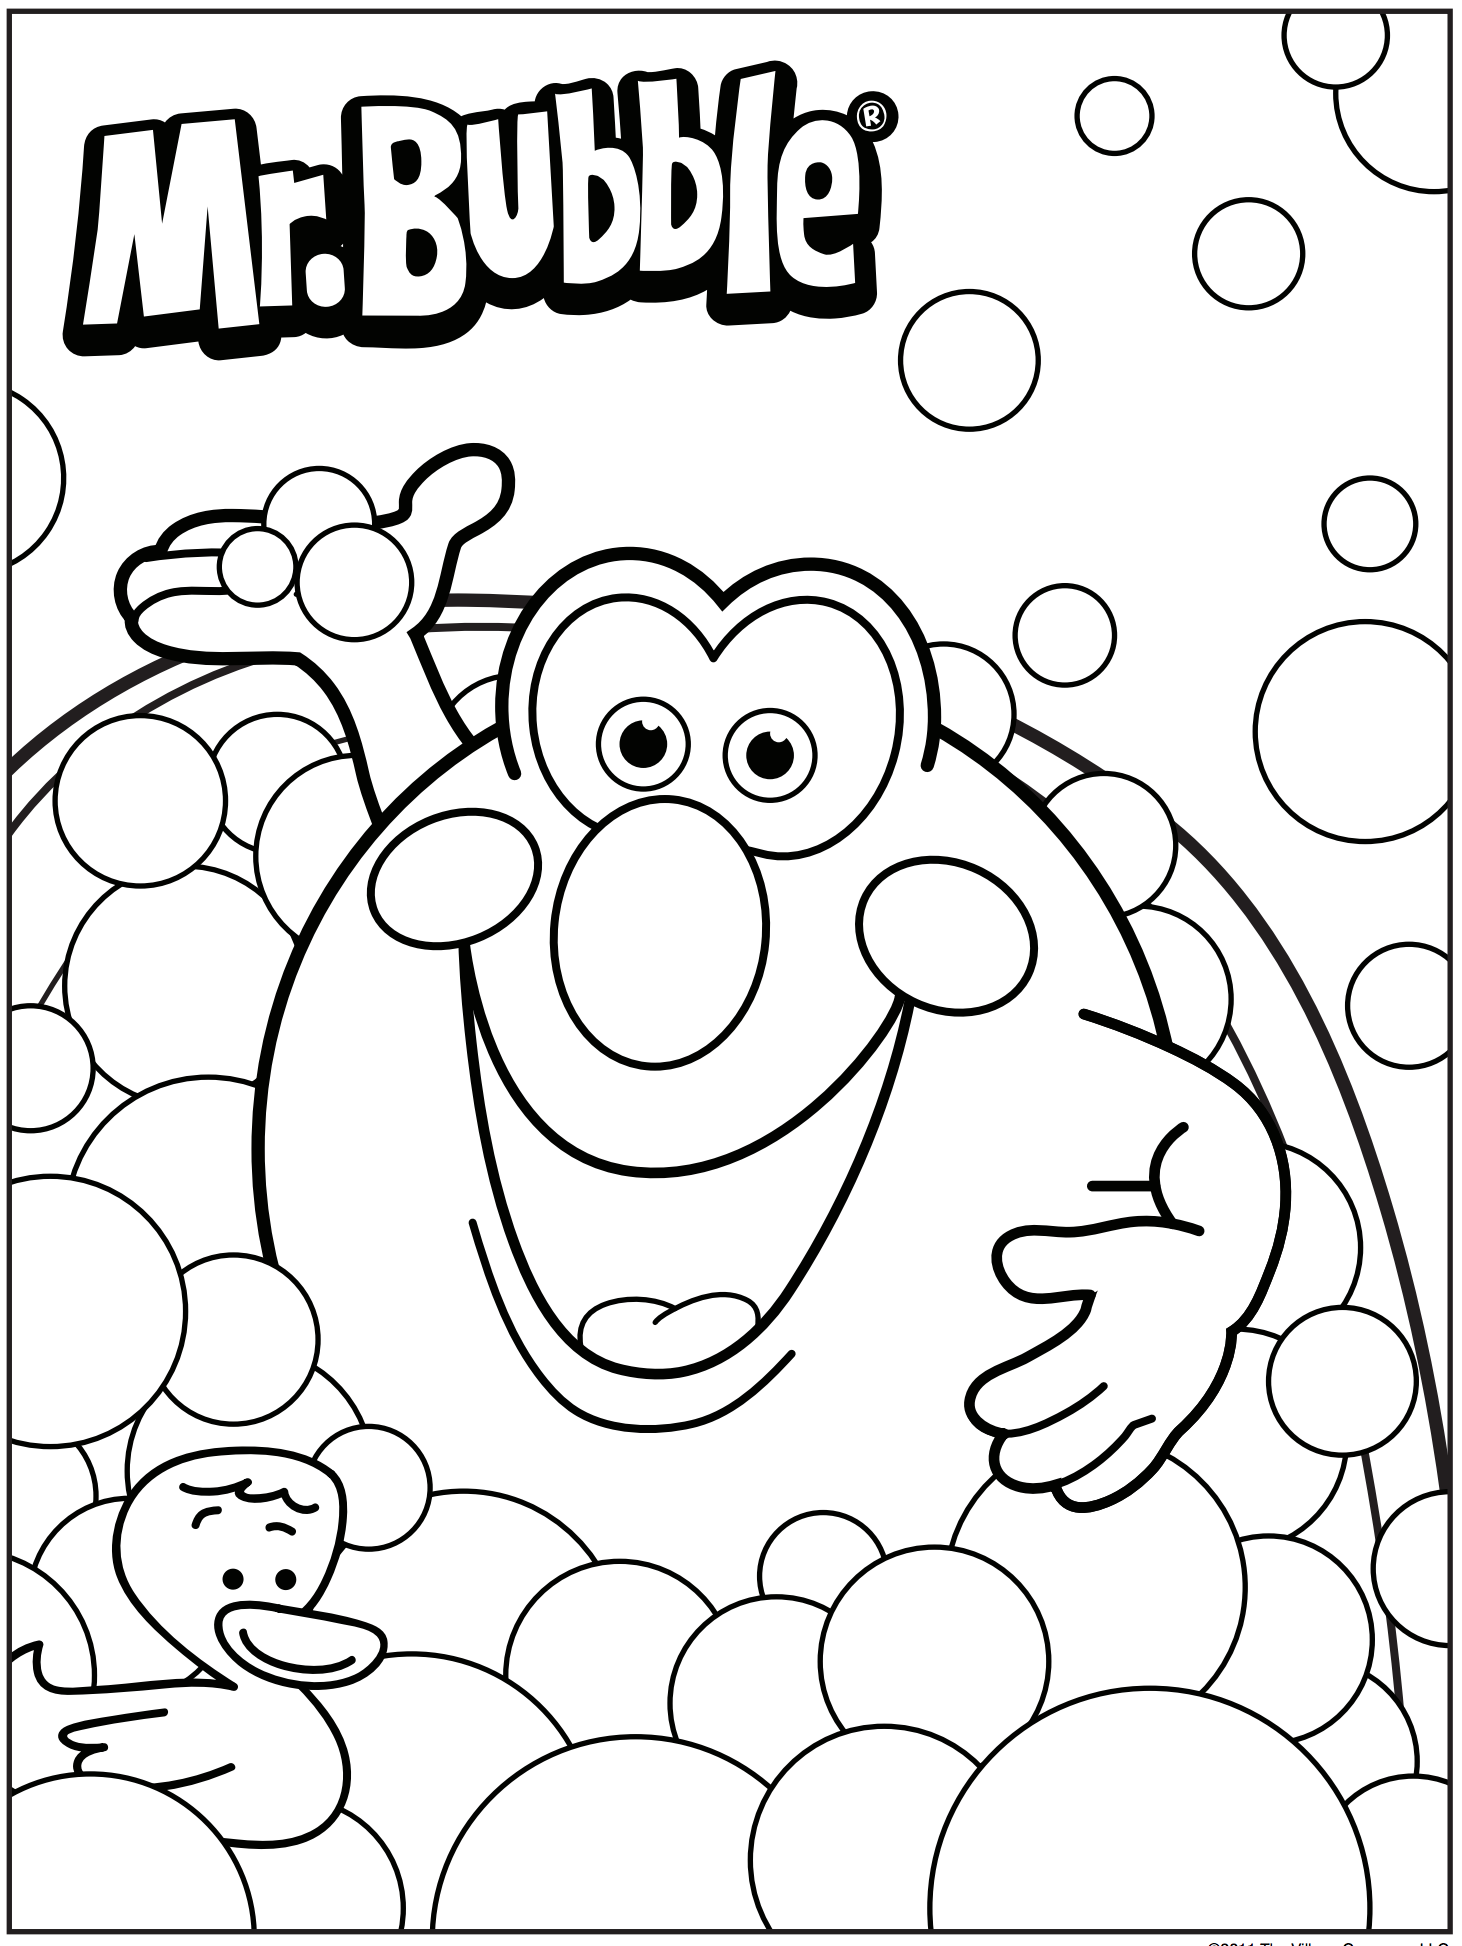 mr bubble coloring page - Fun Coloring Pages